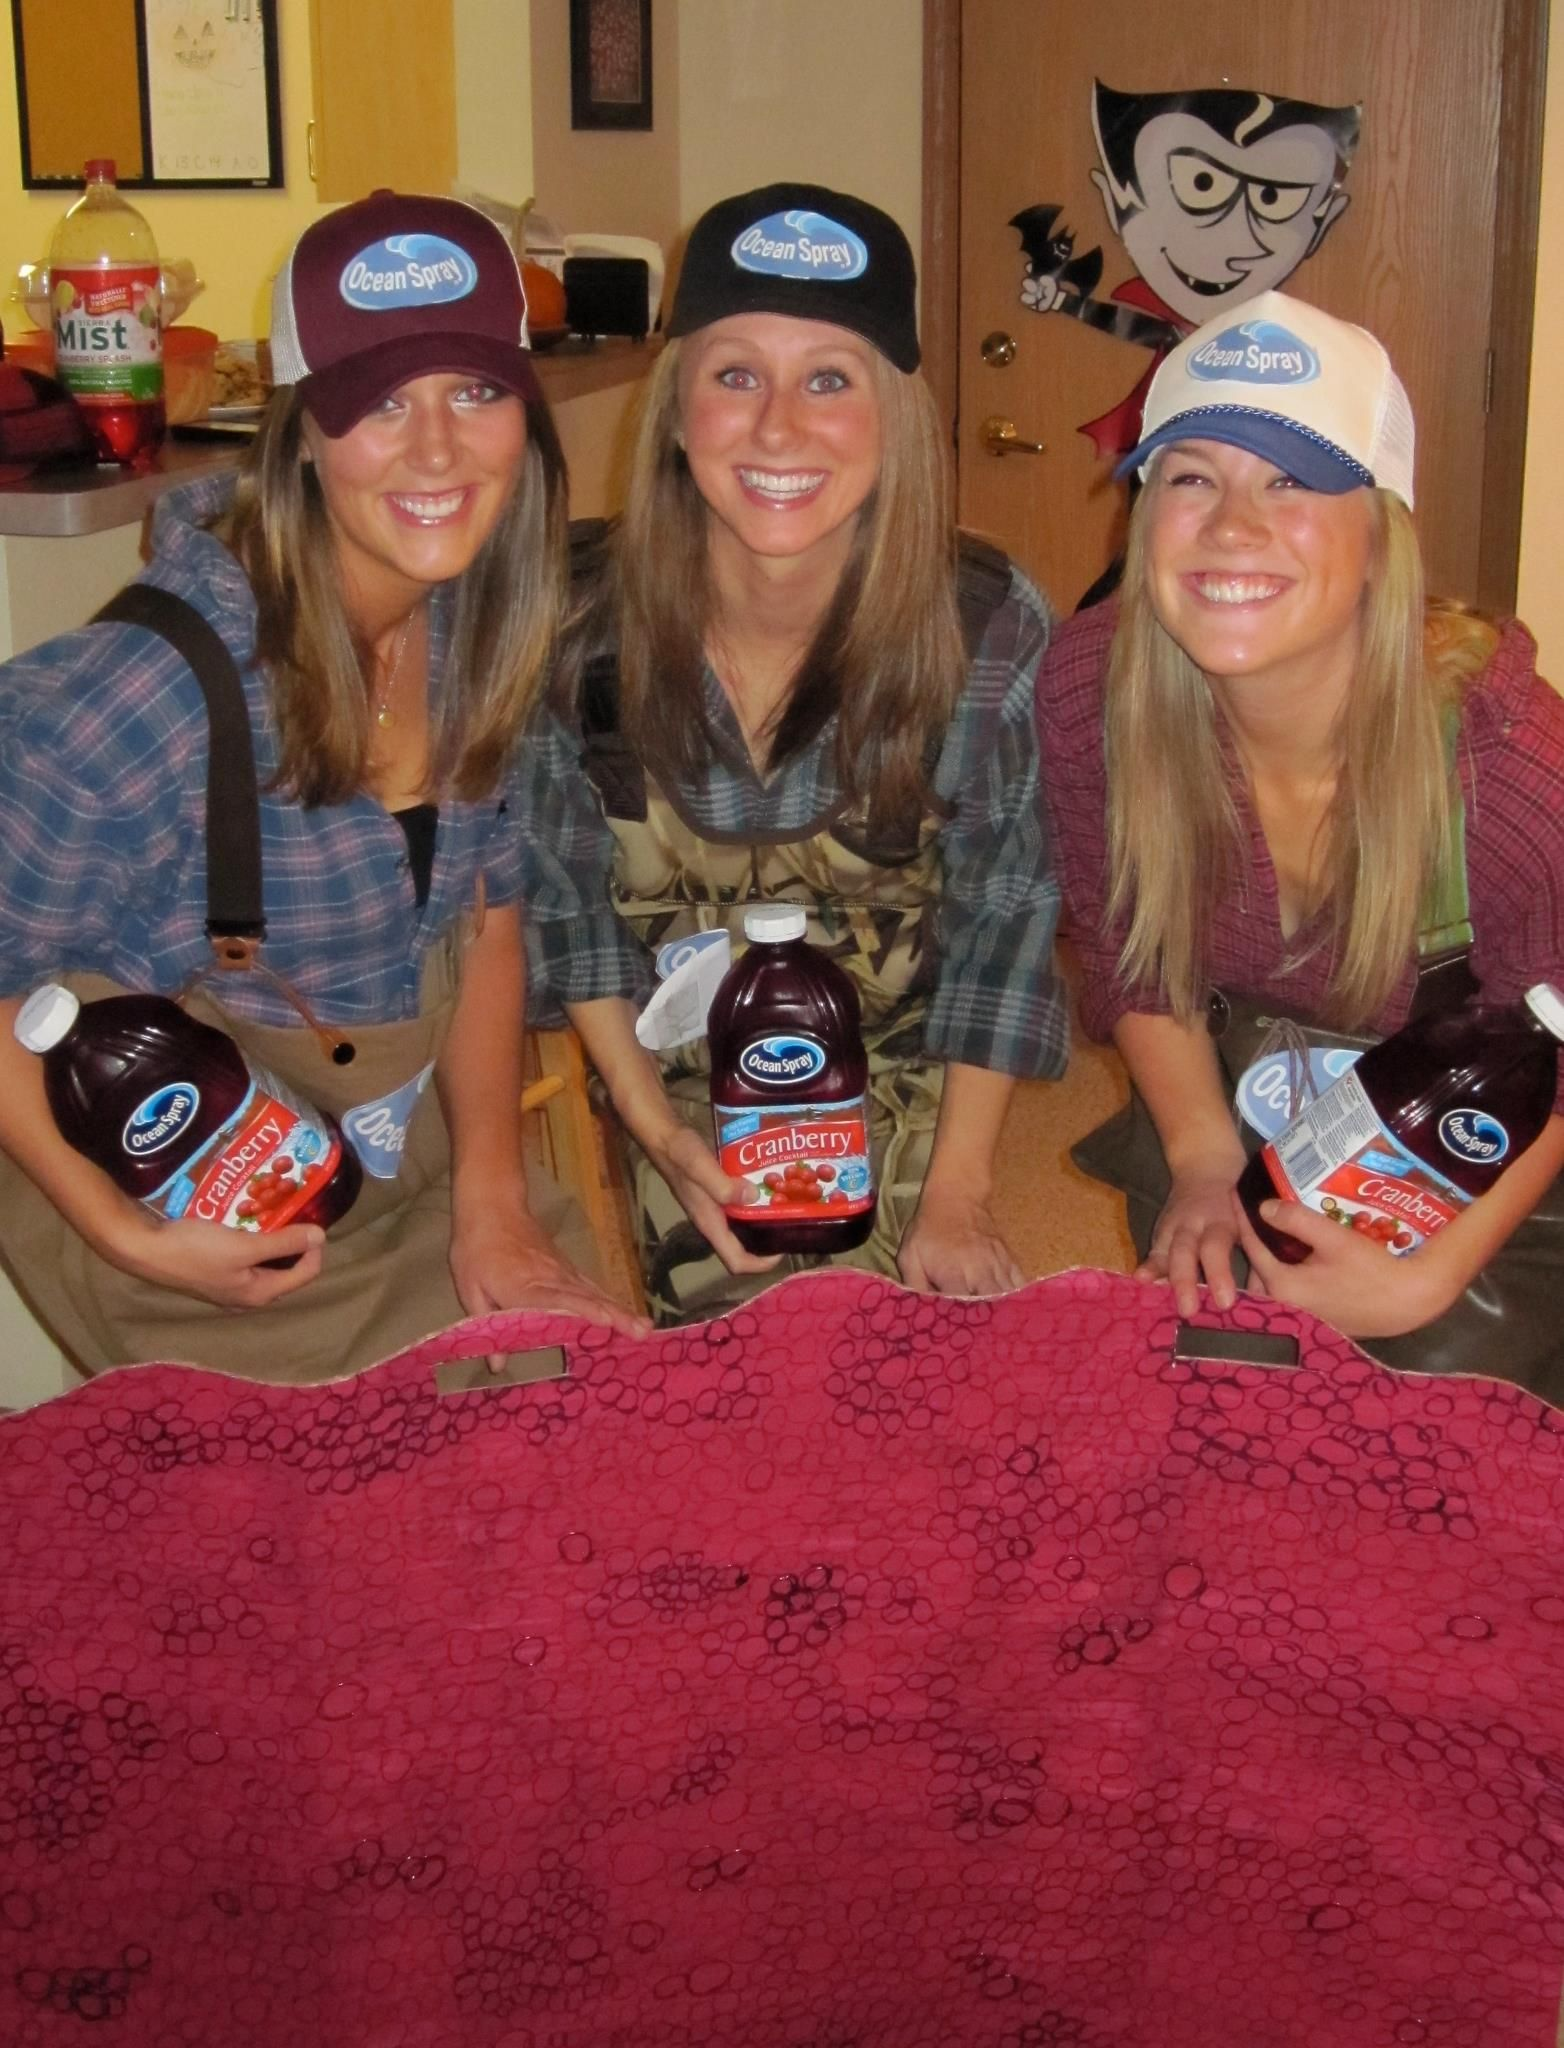 Ocean Spray Commercial Guys group costumes! Style DIY costumes with this super fun, easy tool ...